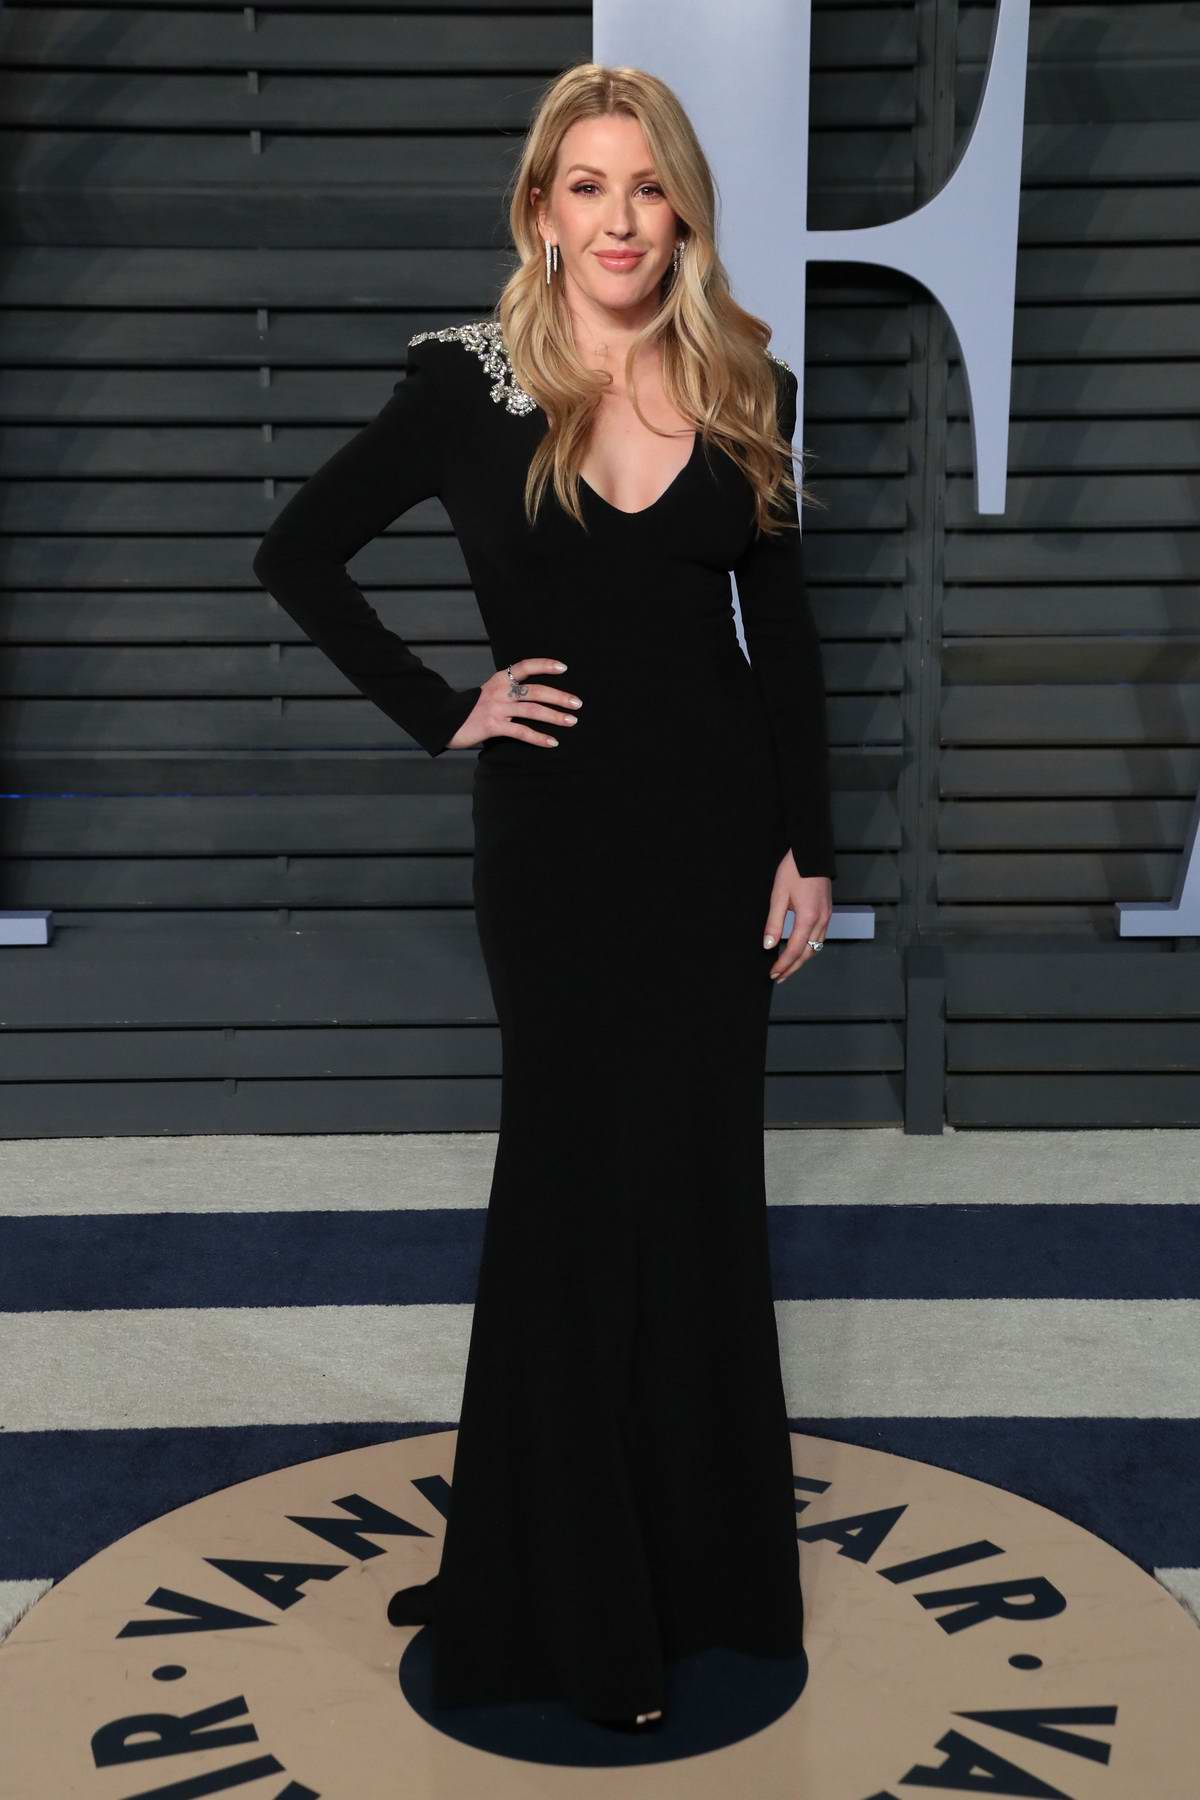 Ellie Goulding attends 2018 Vanity Fair Oscar Party at the Wallis Annenberg Center for the Performing Arts in Beverly Hills, Los Angeles